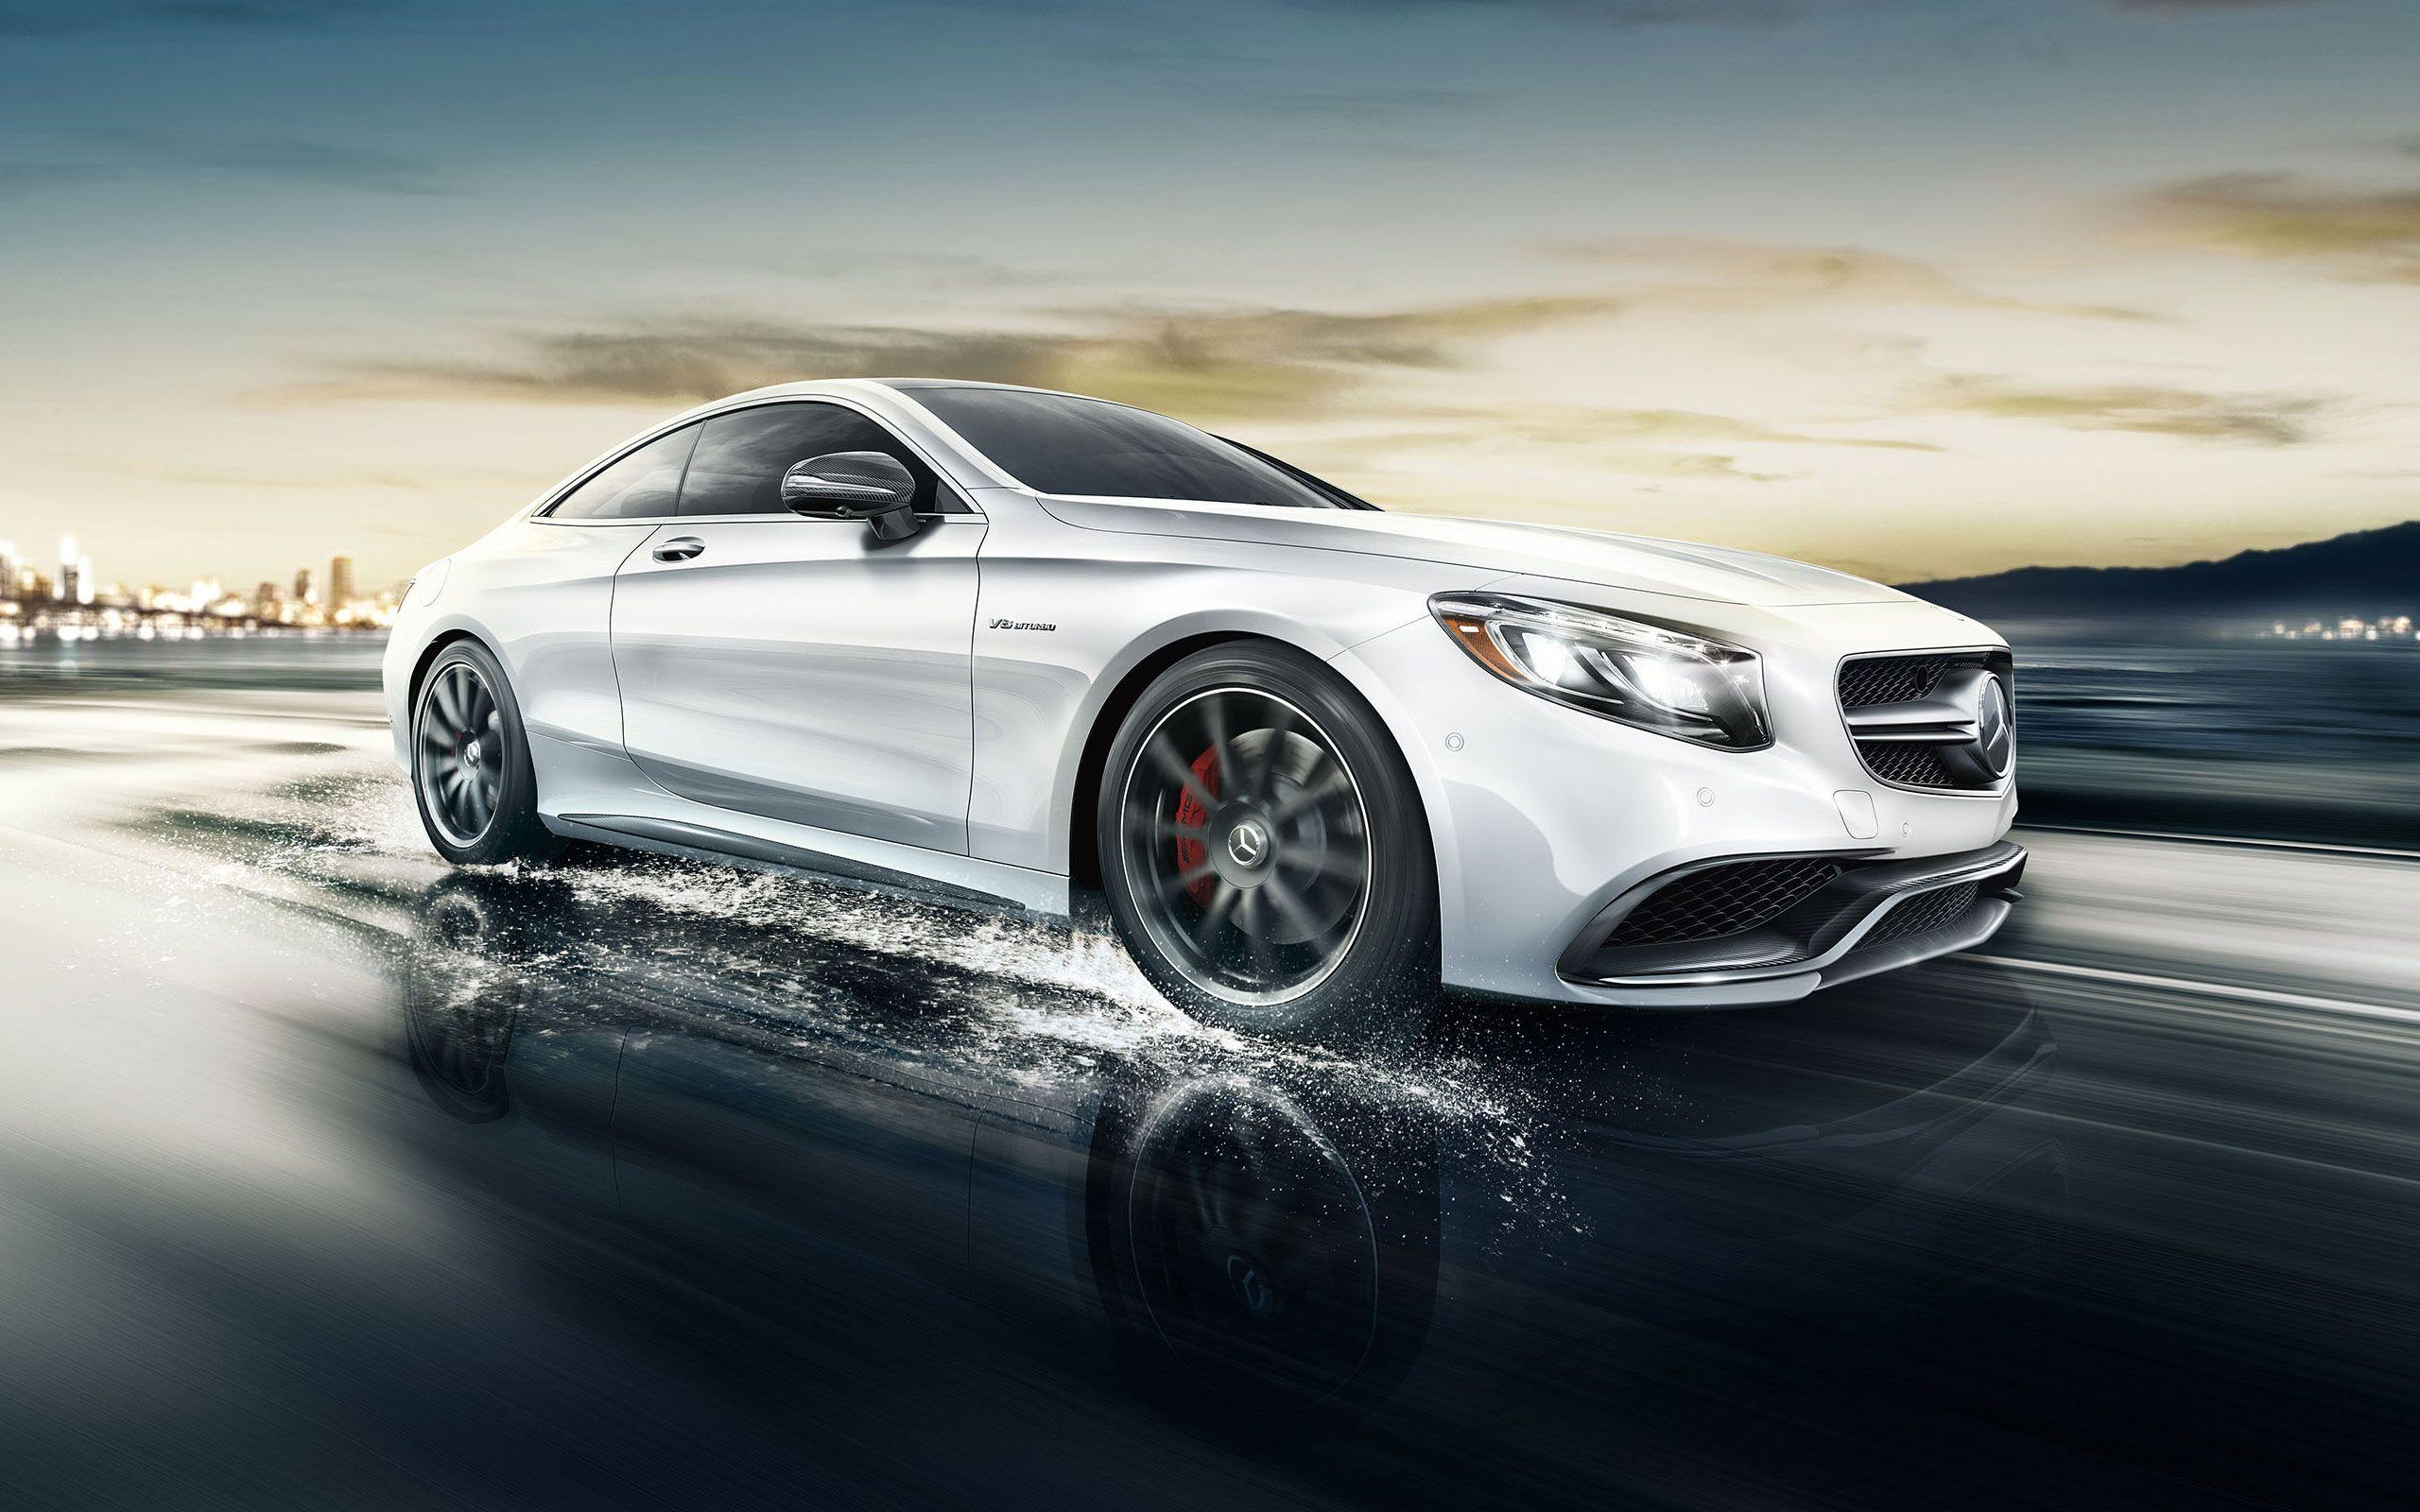 16 Luxury Pubg Wallpaper Iphone 6: Mercedes-AMG C63 S Coupe Wallpapers